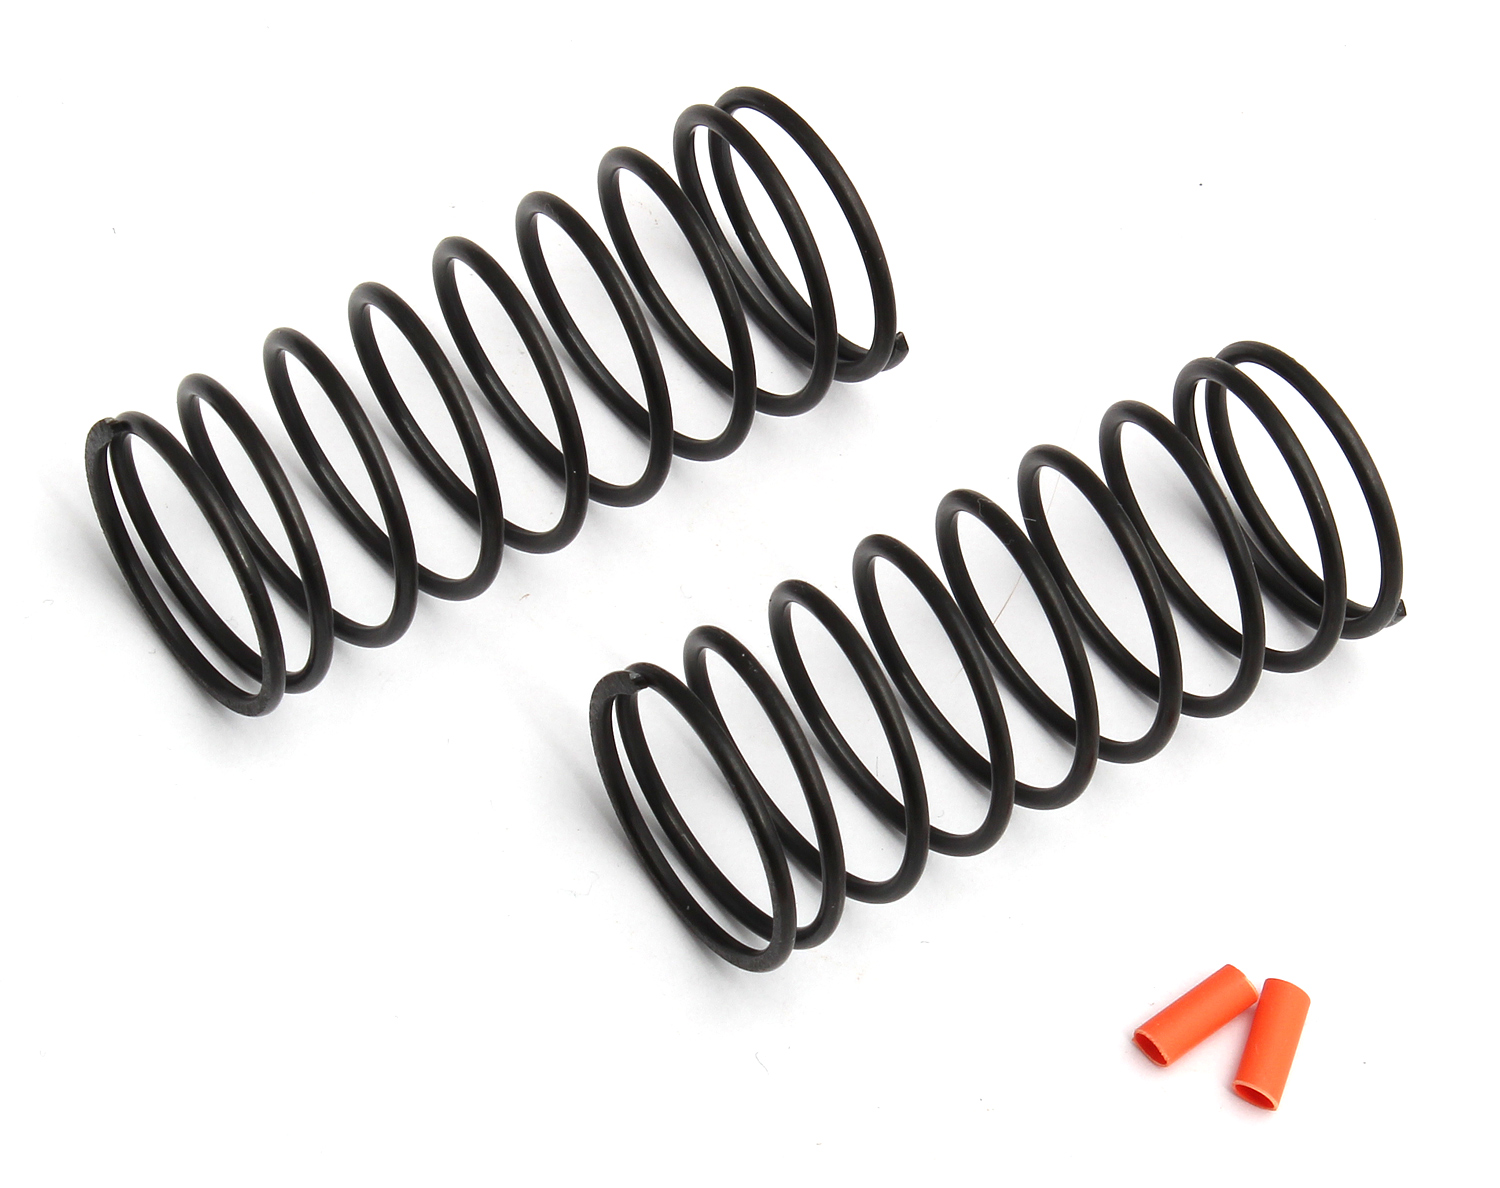 ASC91333 12mm Front Springs, orange, 4.05 lb